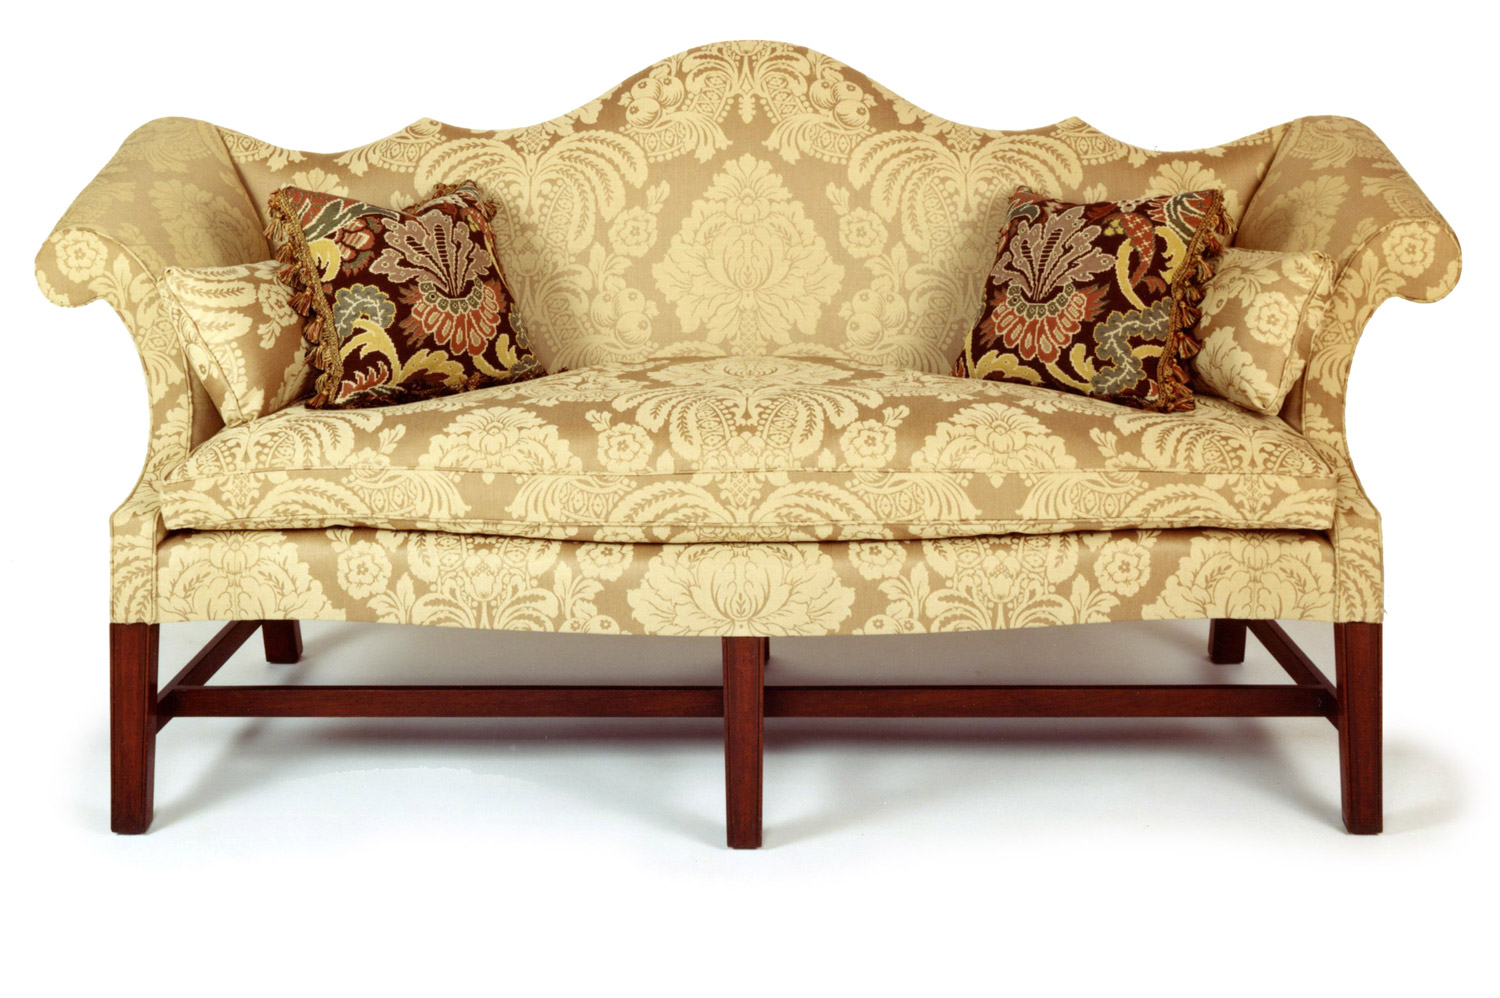 william and mary chair high cushions with straps andersen stauffer furniture makers seating dupont sofa